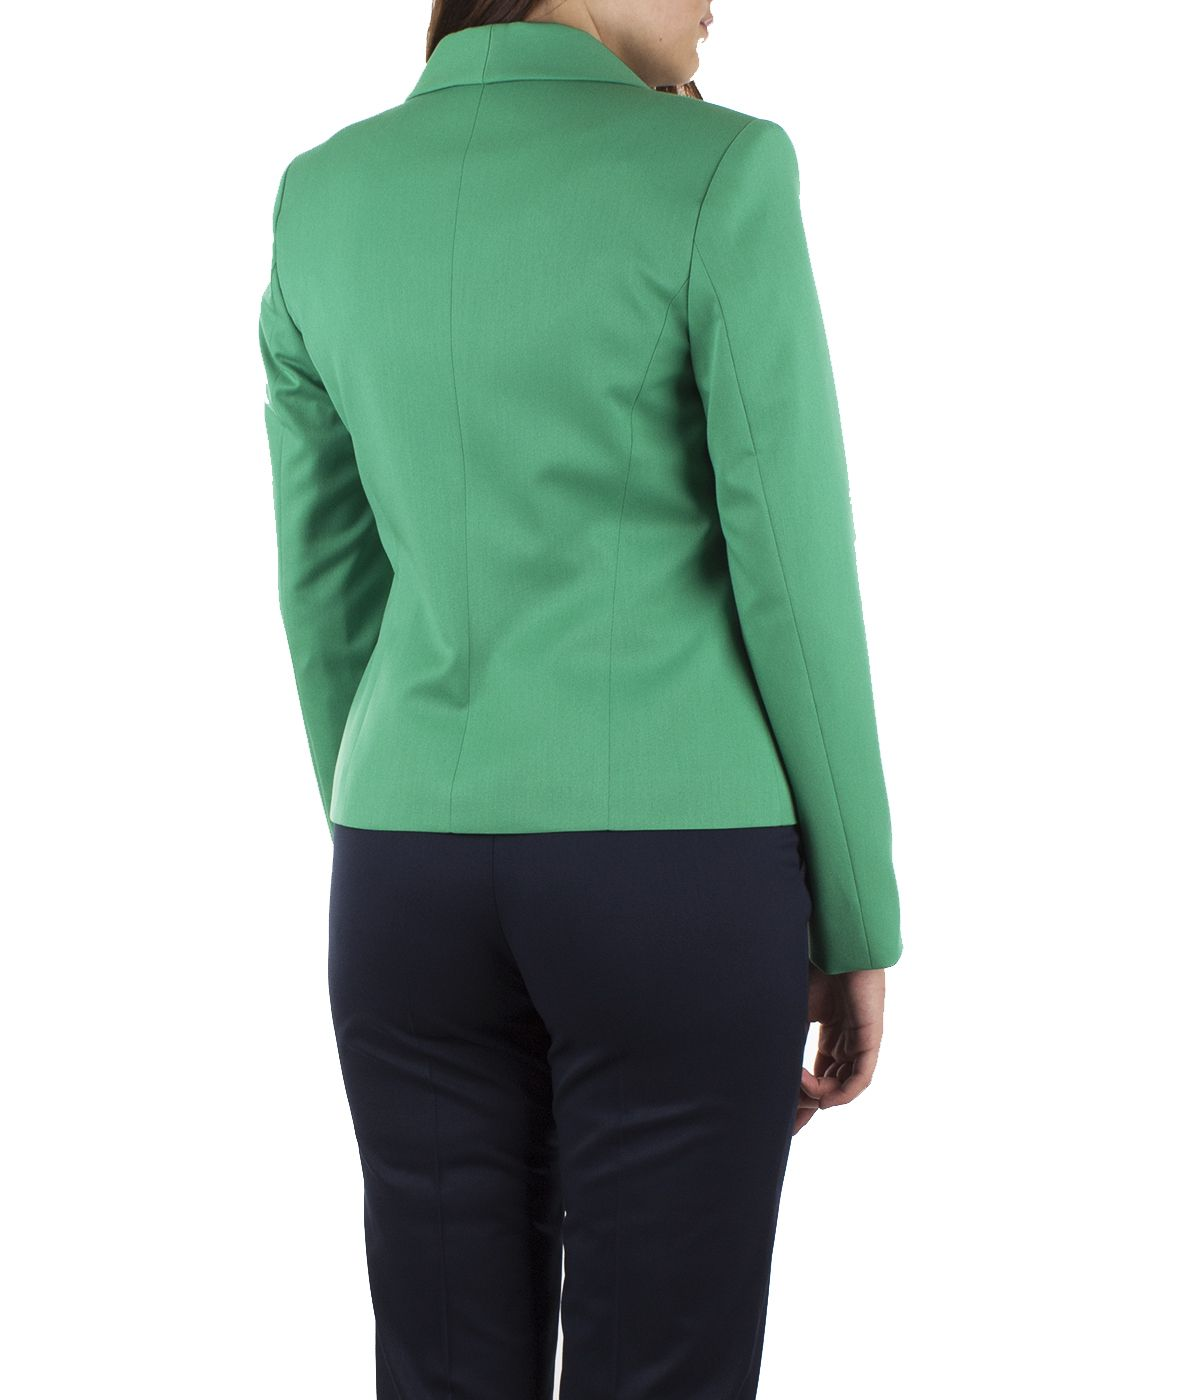 Fitted jacket with lapels and buttoning with pearl-type button 3